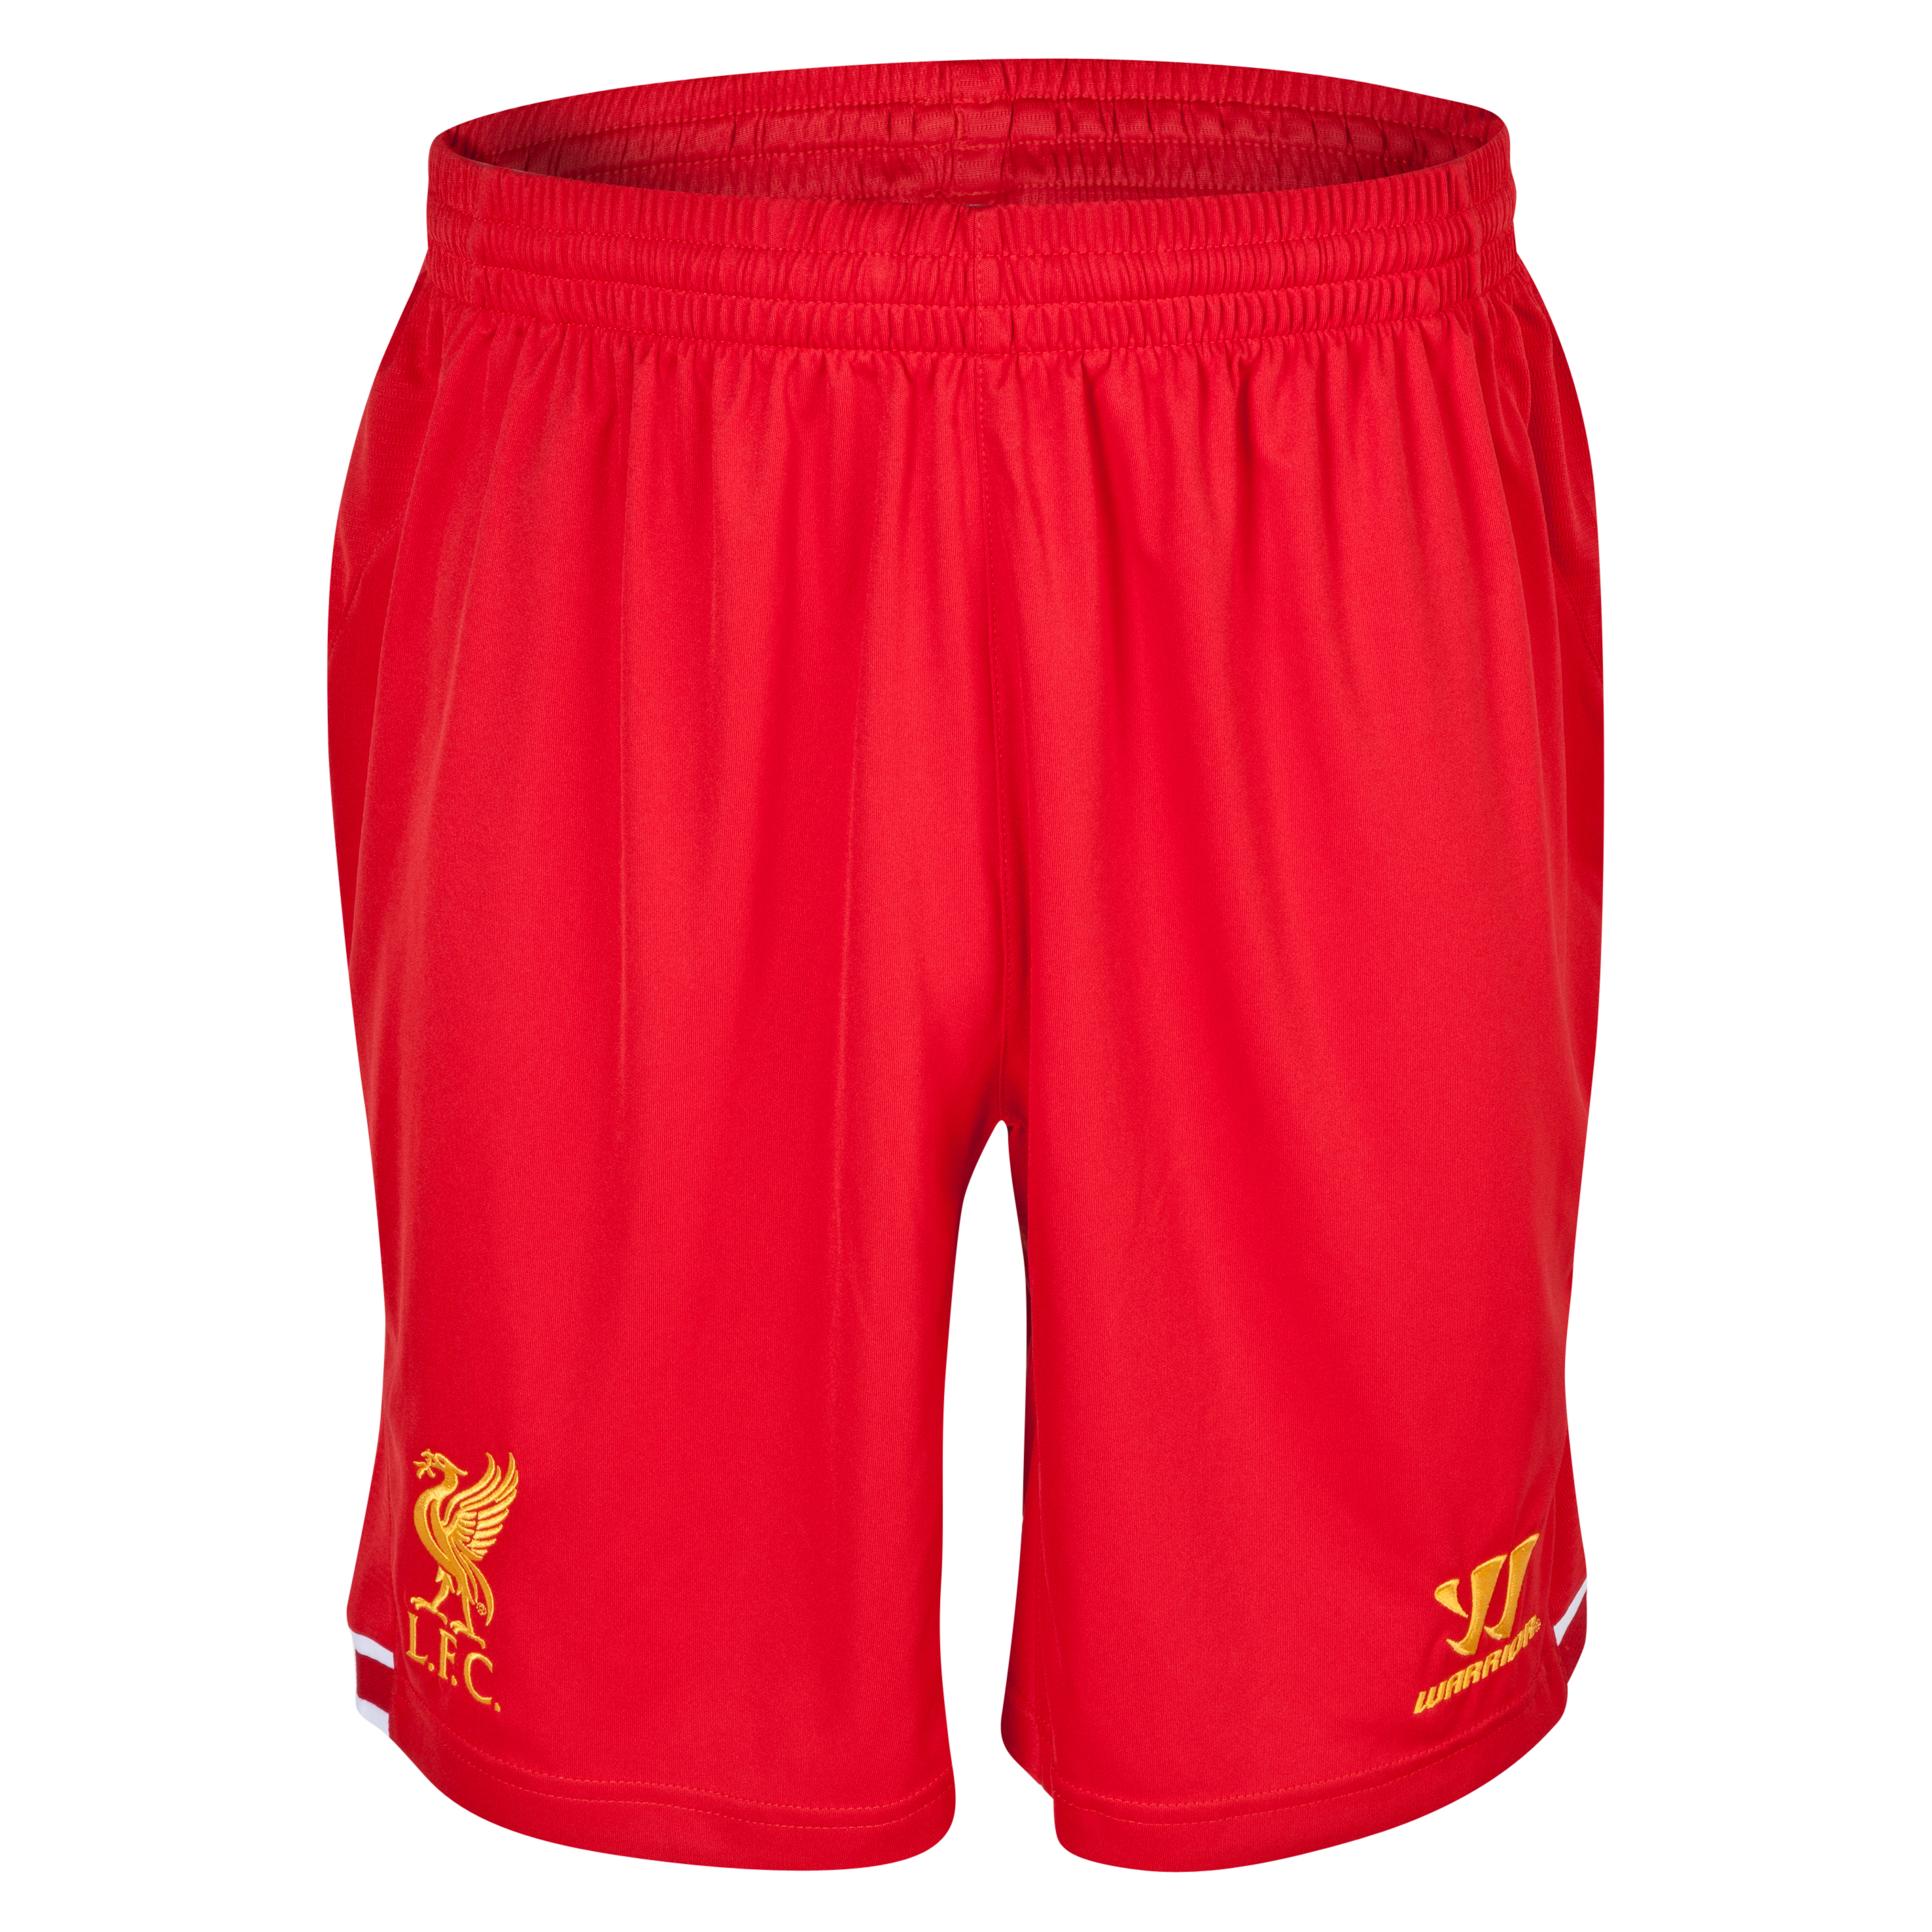 Liverpool Home Shorts 2013/14